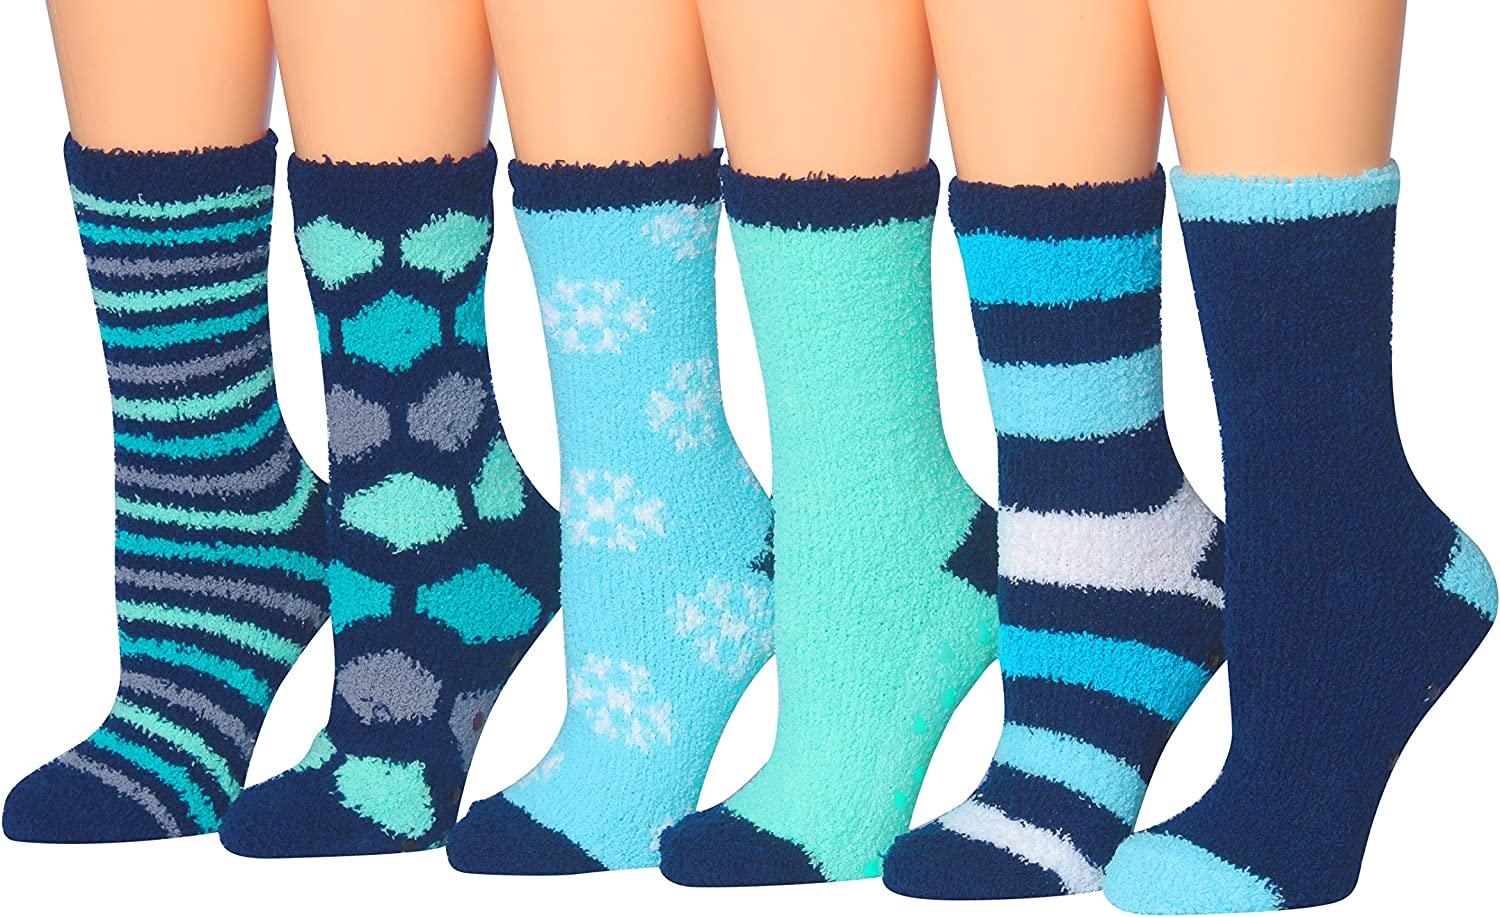 Tipi Toe Women's 6Pairs Patterned & Solid AntiSkid Soft Fuzzy Crew Socks